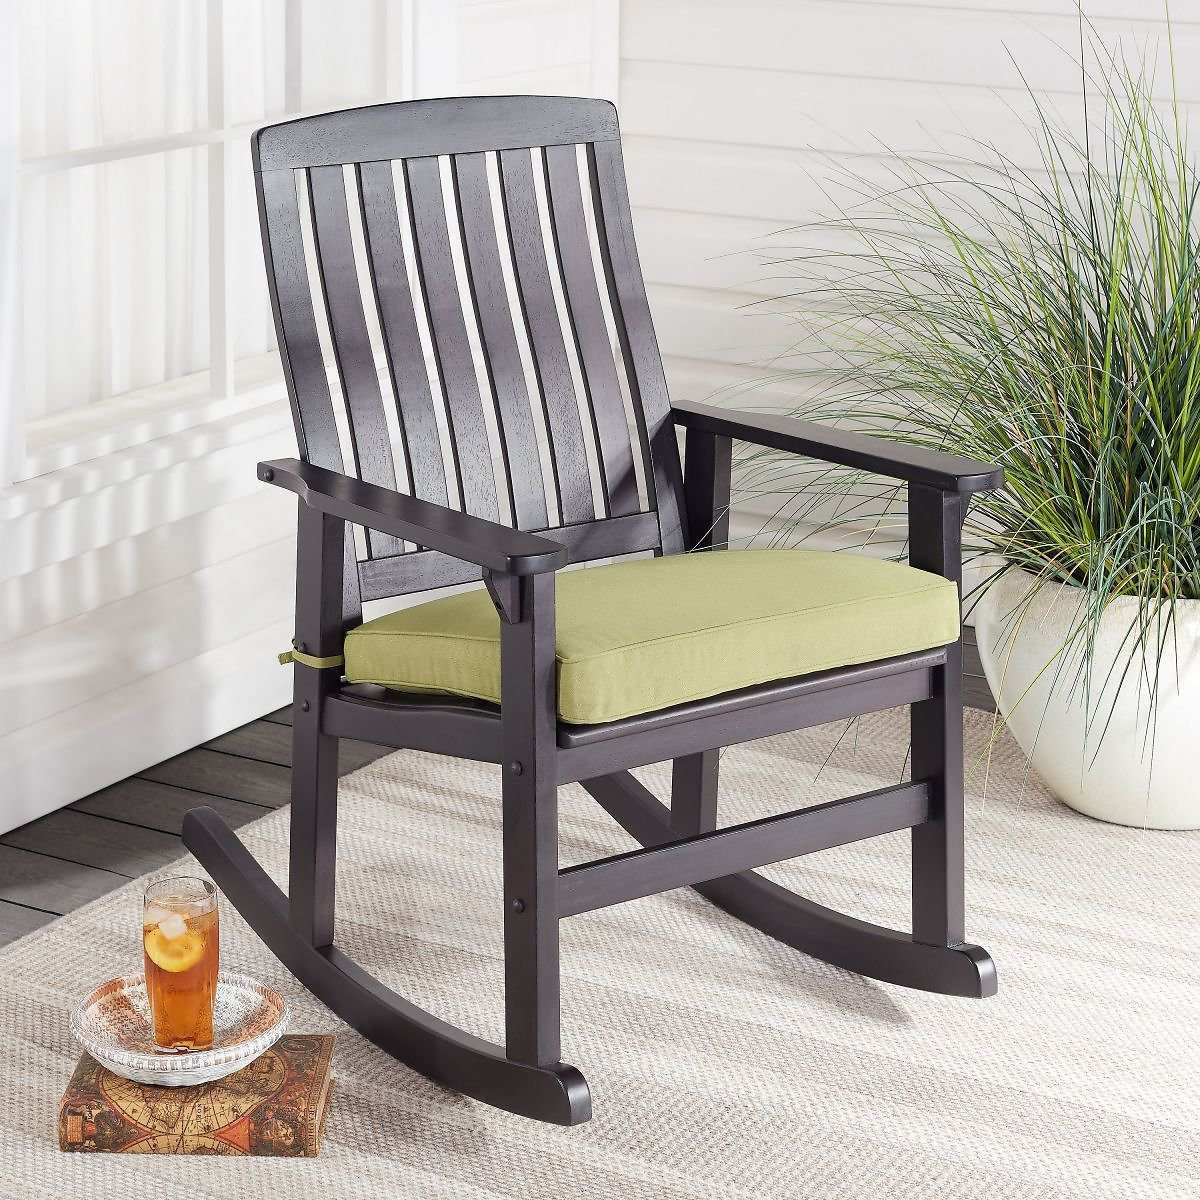 Better Homes & Gardens Delahey Cushioned Outdoor Wood Rocking Chair (2 Colors)